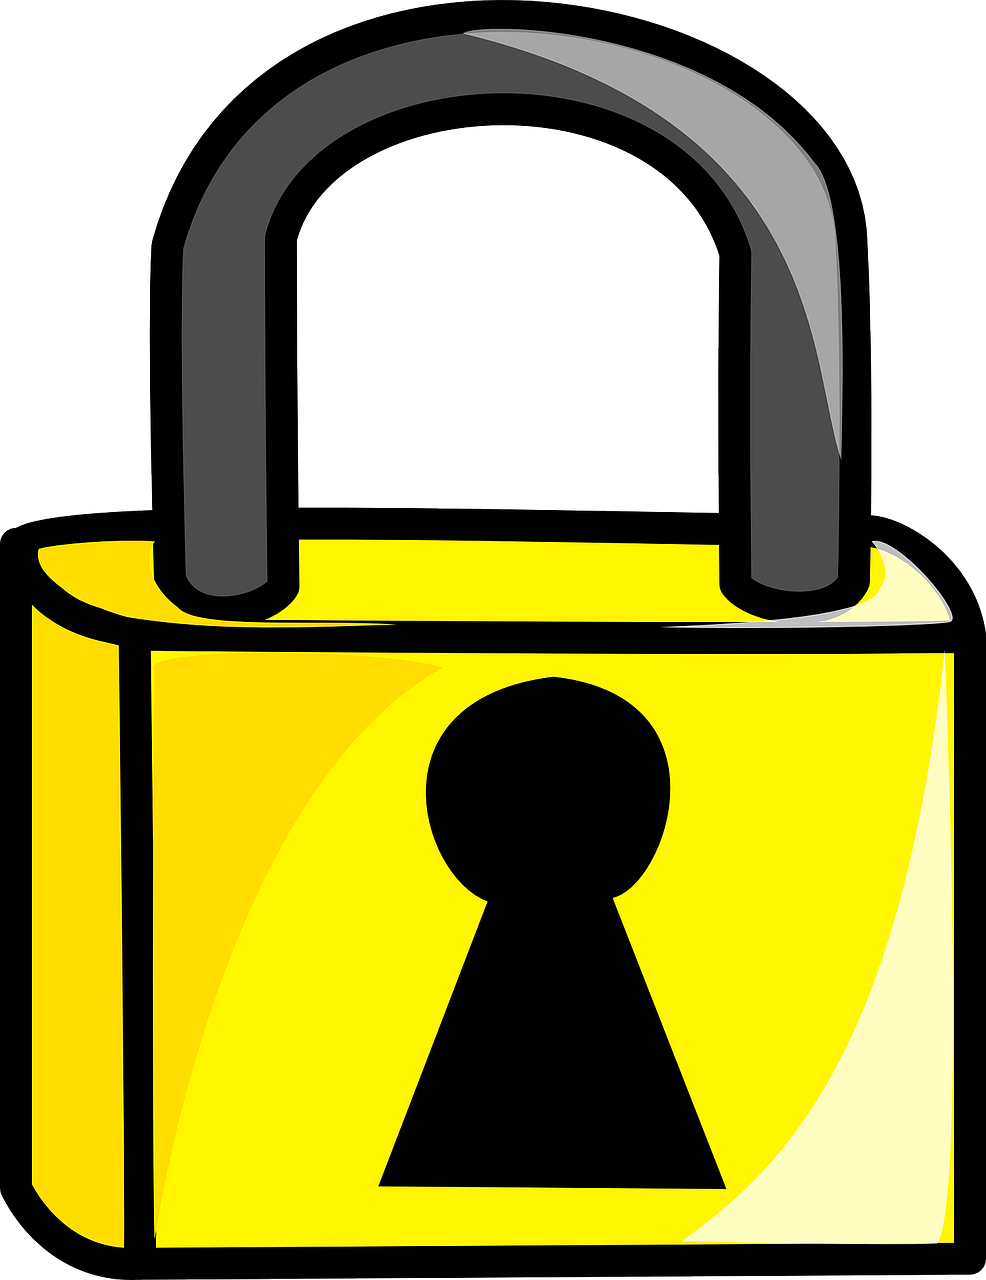 Key clipart yellow. Computer can be made